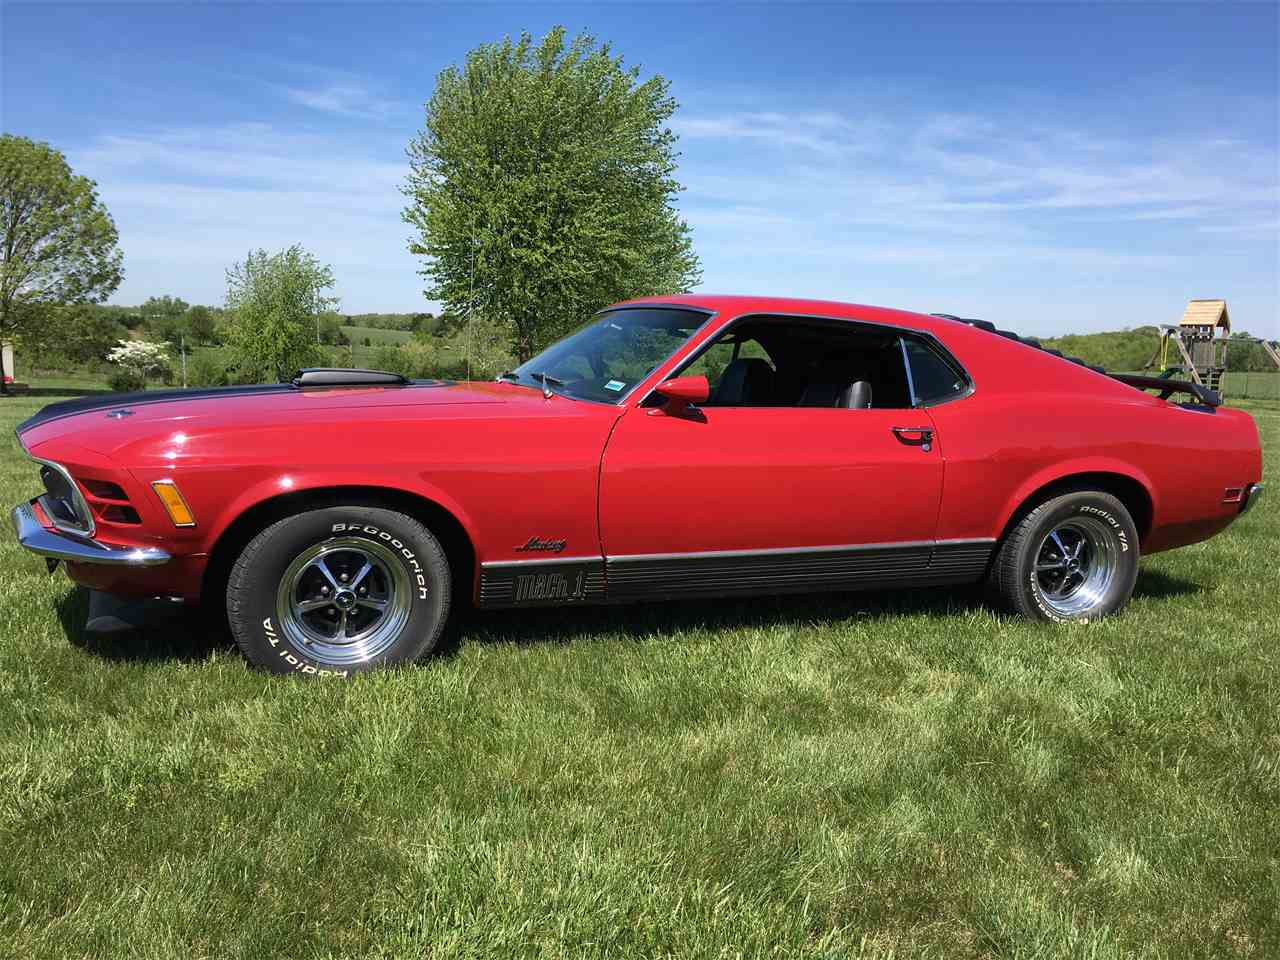 1970 Ford Mustang Mach 1 for Sale | ClassicCars.com | CC-979697